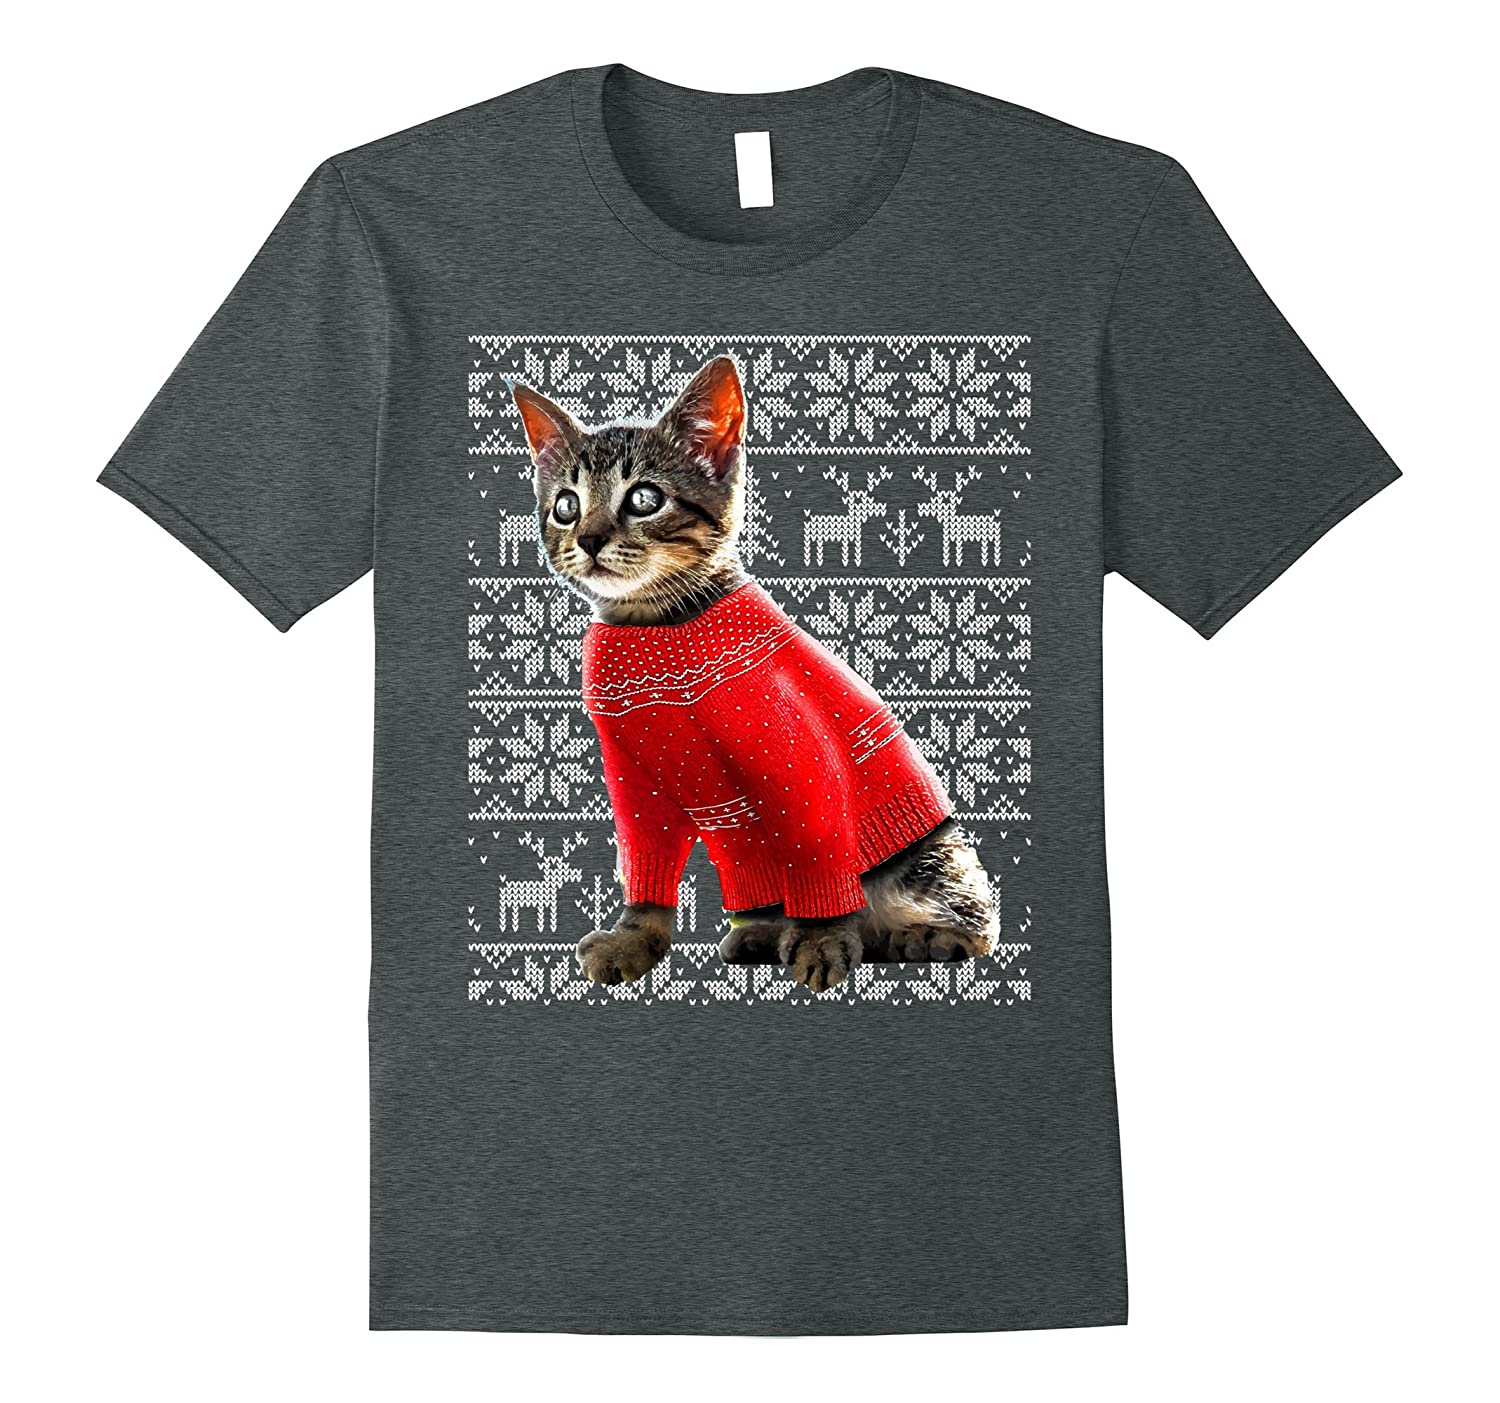 Christmas Cat Sweater.Ugly Christmas Sweater Cat Shirt Christmas Cat Sweater Shirt Anz